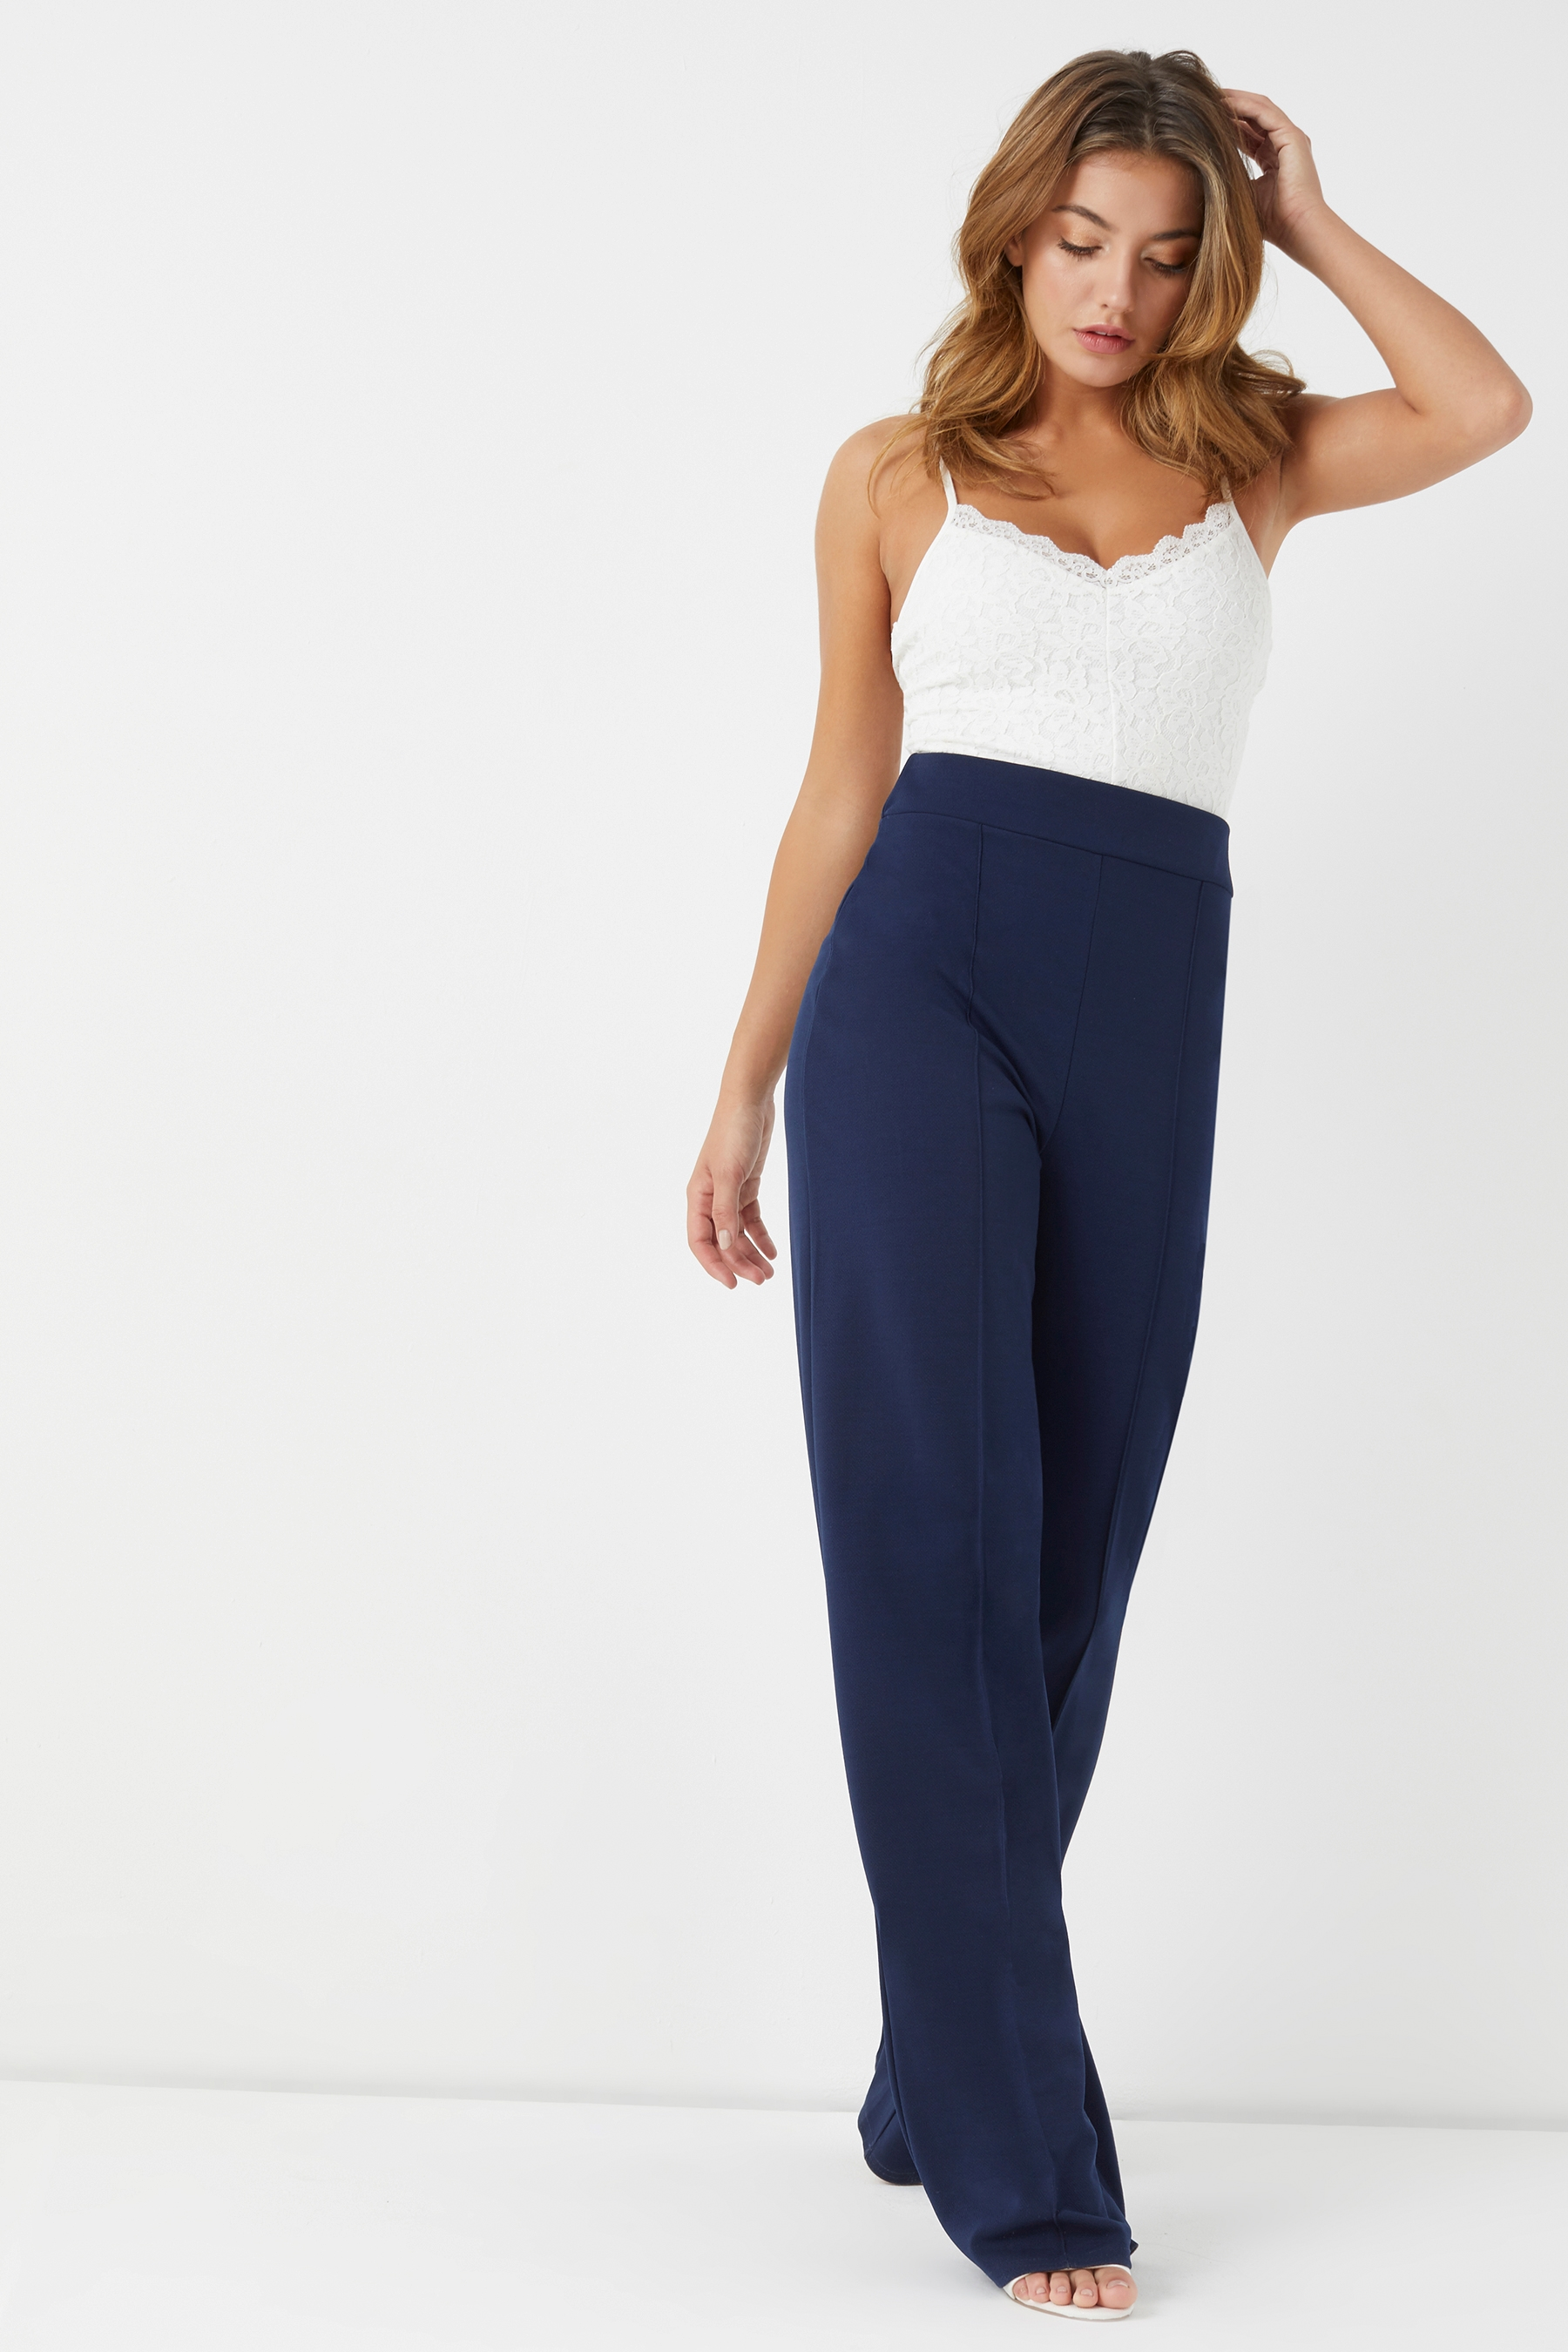 great quality the sale of shoes wholesale sales Womens Lipsy Tall High Waist Trouser - Blue   Trousers, Lipsy, Pants